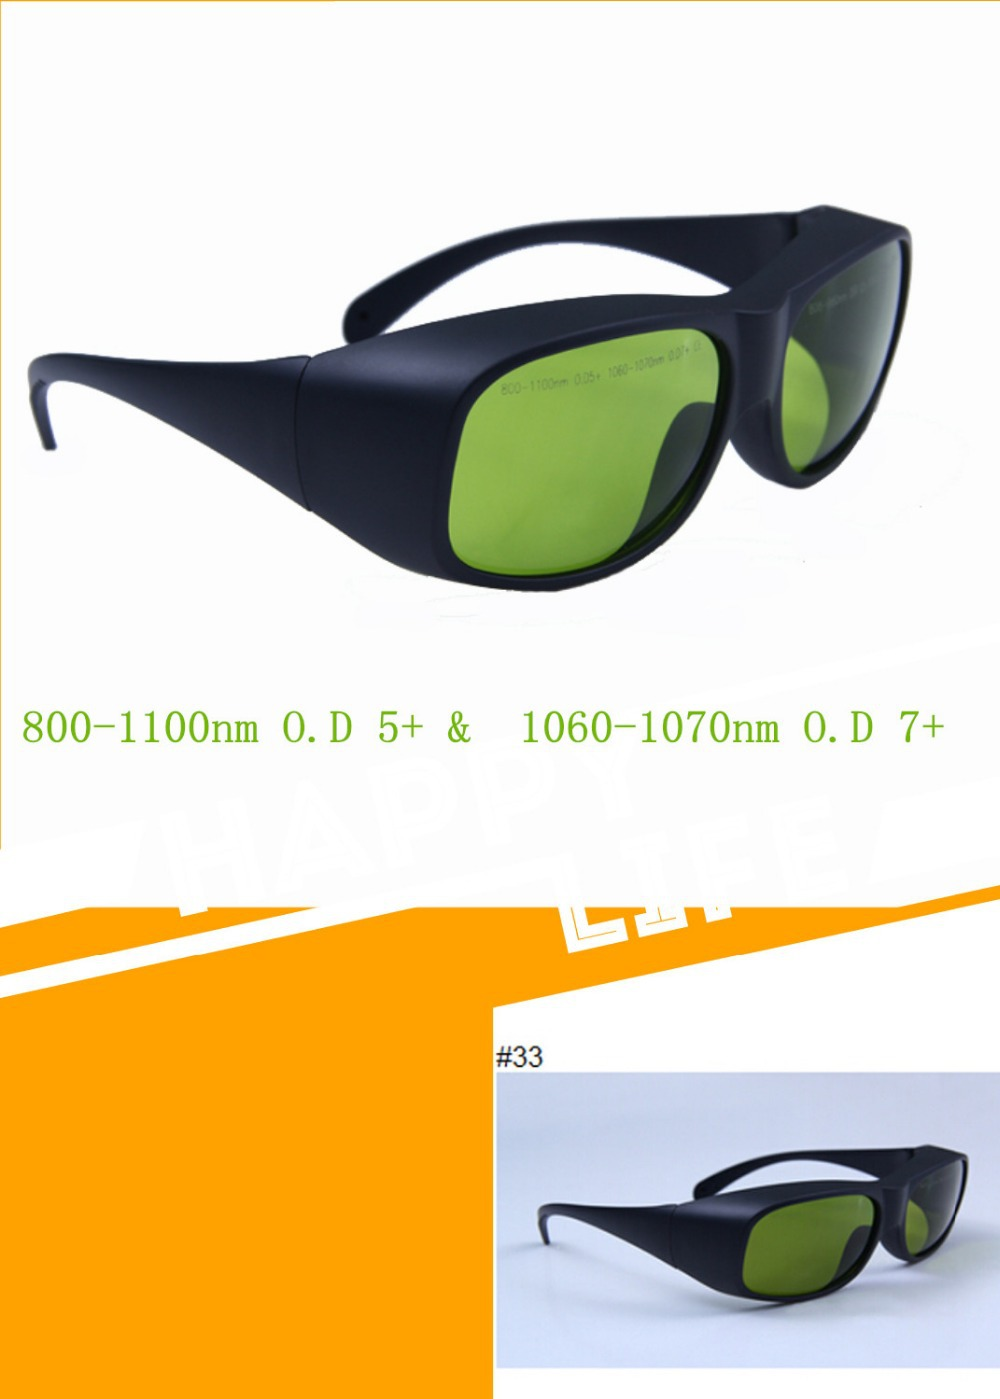 Goggle Laser Glasses E-light Safety Goggle 800-1064nm Eye Protection Goggles Green Laser Safety Glasses Free Shipping outdoor safety eye protection metal mesh shield goggle black green